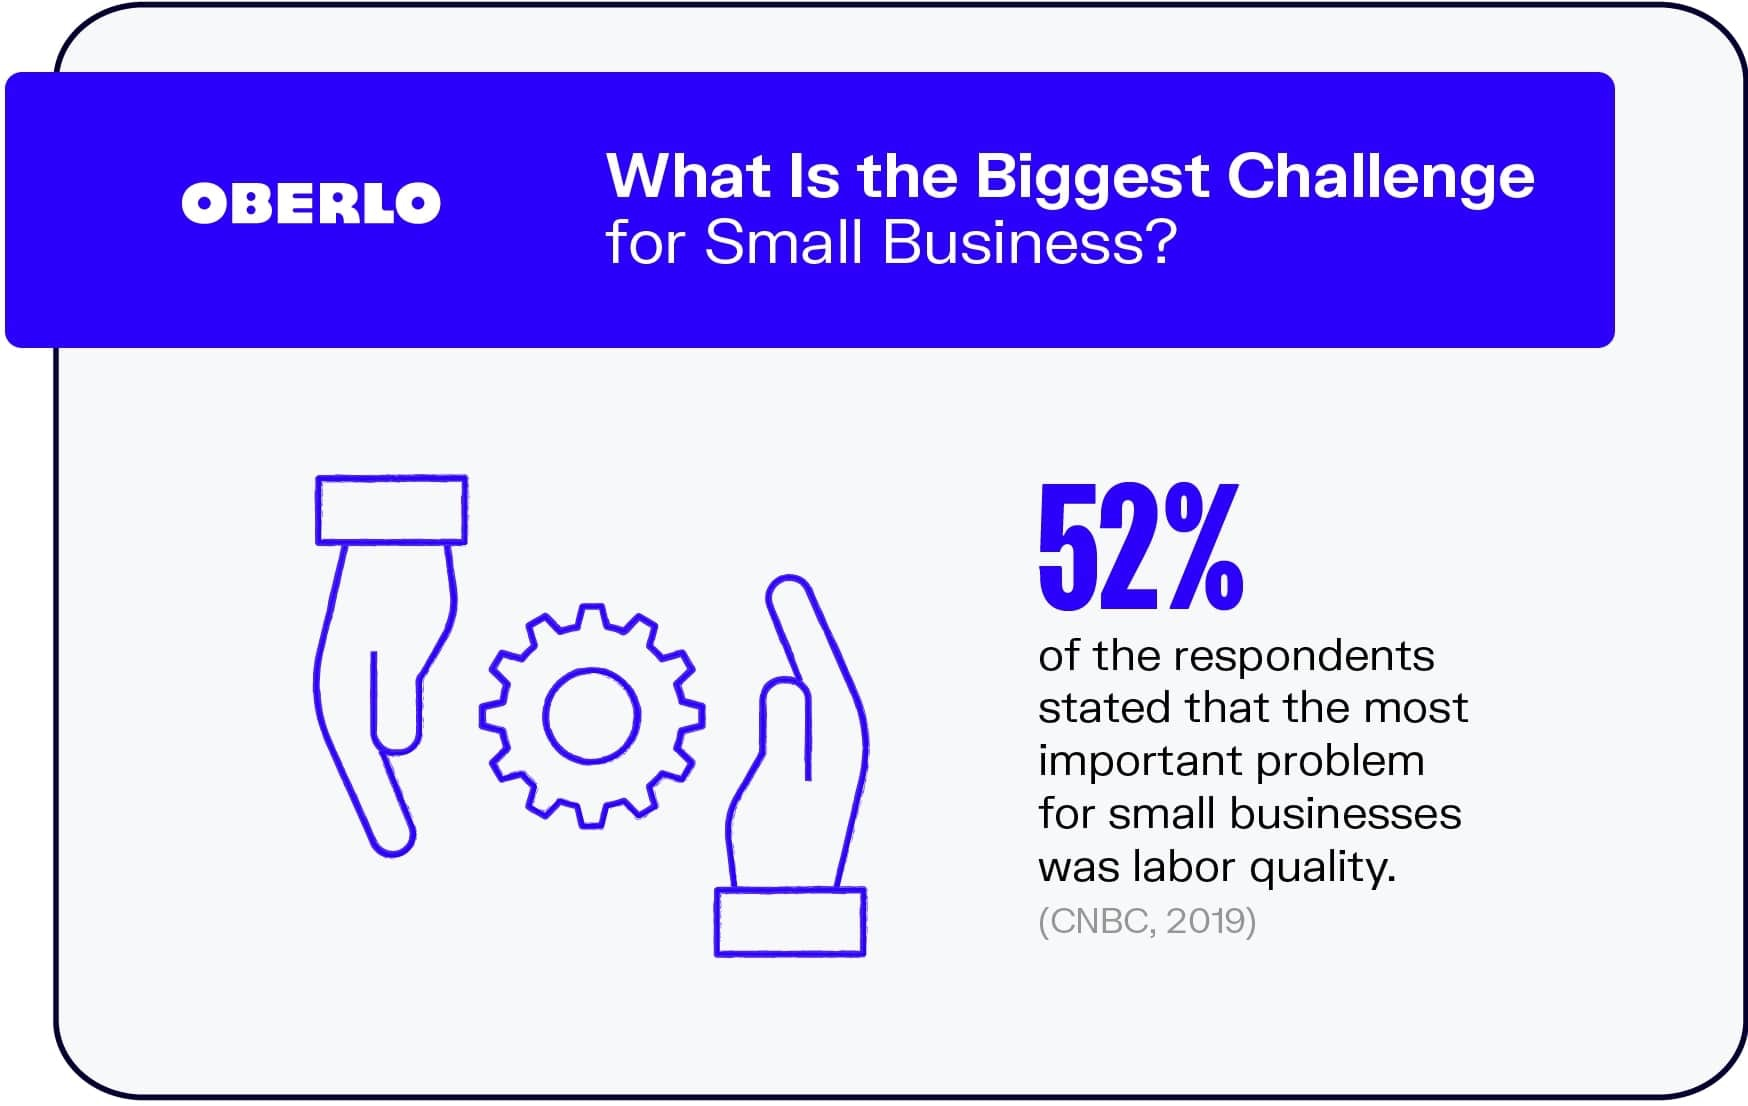 What Is the Biggest Challenge for Small Businesses?